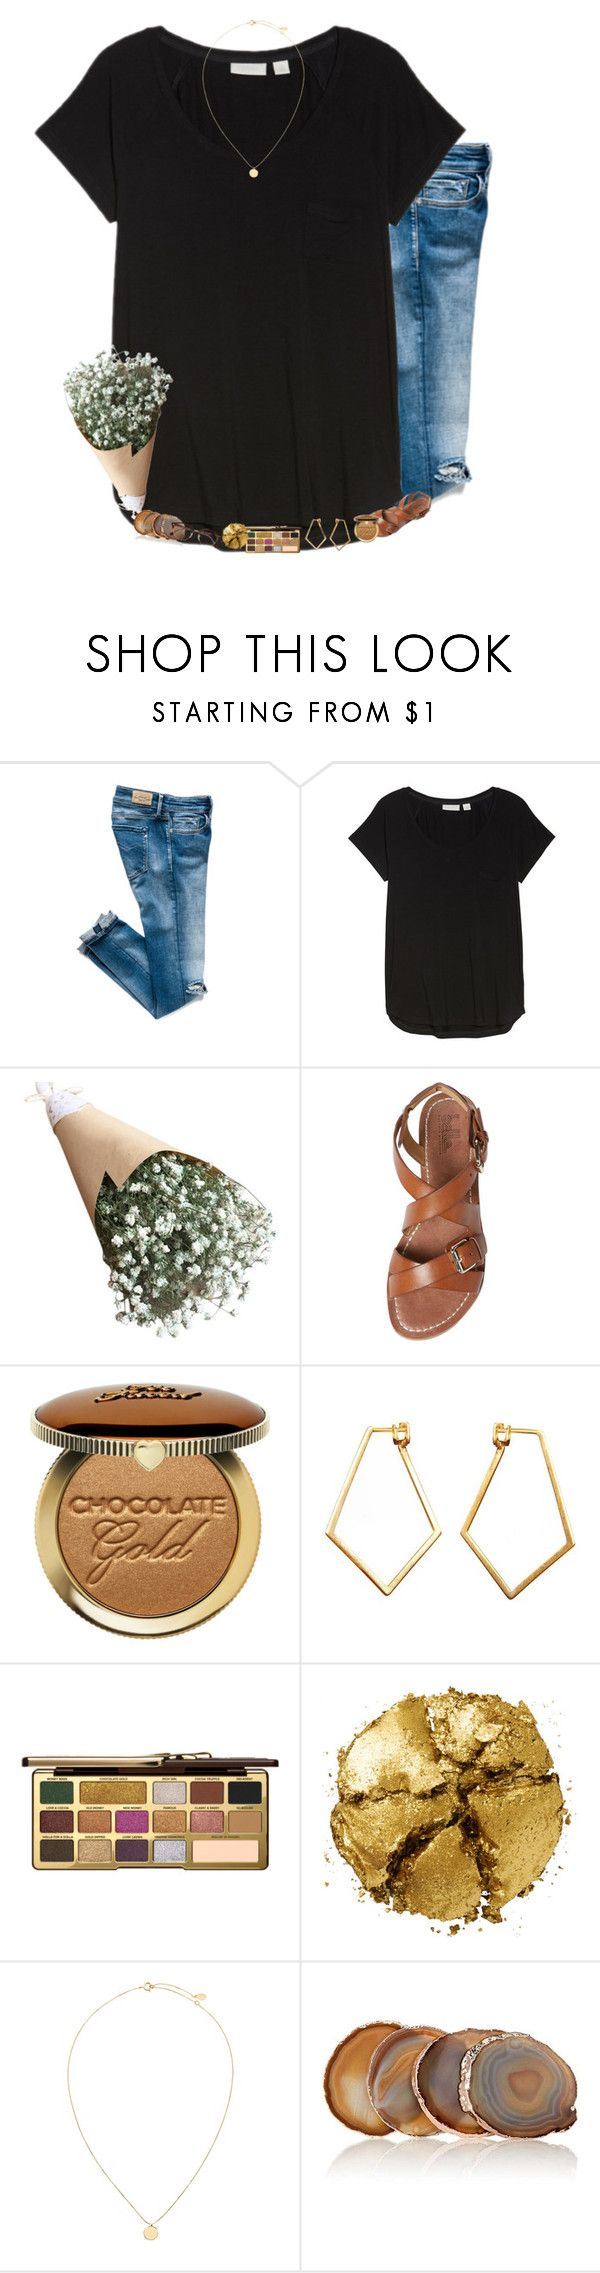 """I am on the run and go"" by mac-moses ❤ liked on Polyvore featuring Nordstrom, belle by Sigerson Morrison, Dutch Basics, Too Faced Cosmetics, Pat McGrath, ANNA by RabLabs and Ray-Ban"